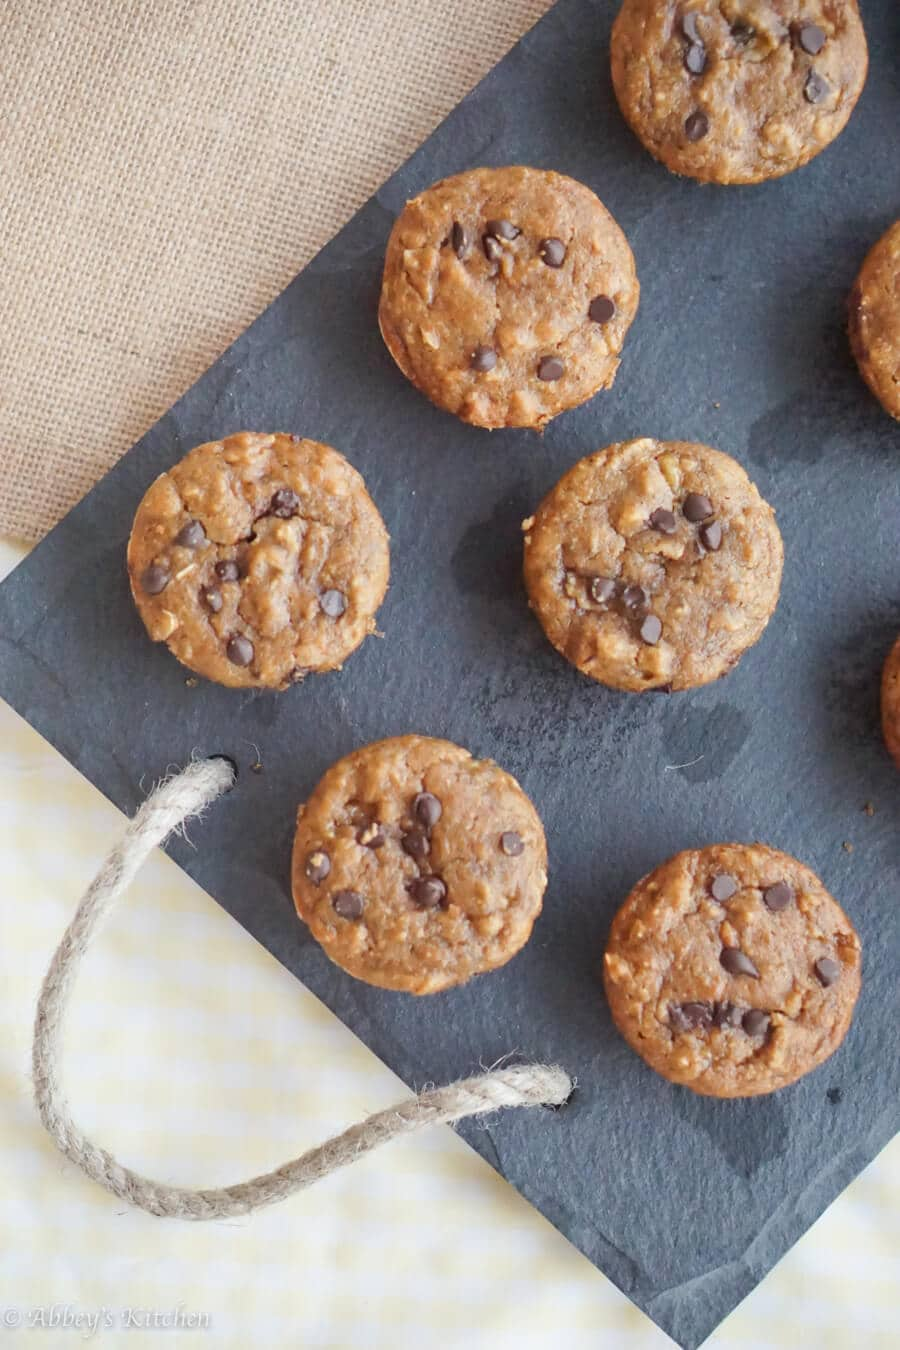 chocolate chip banana muffins on a grey tray using pantry staples